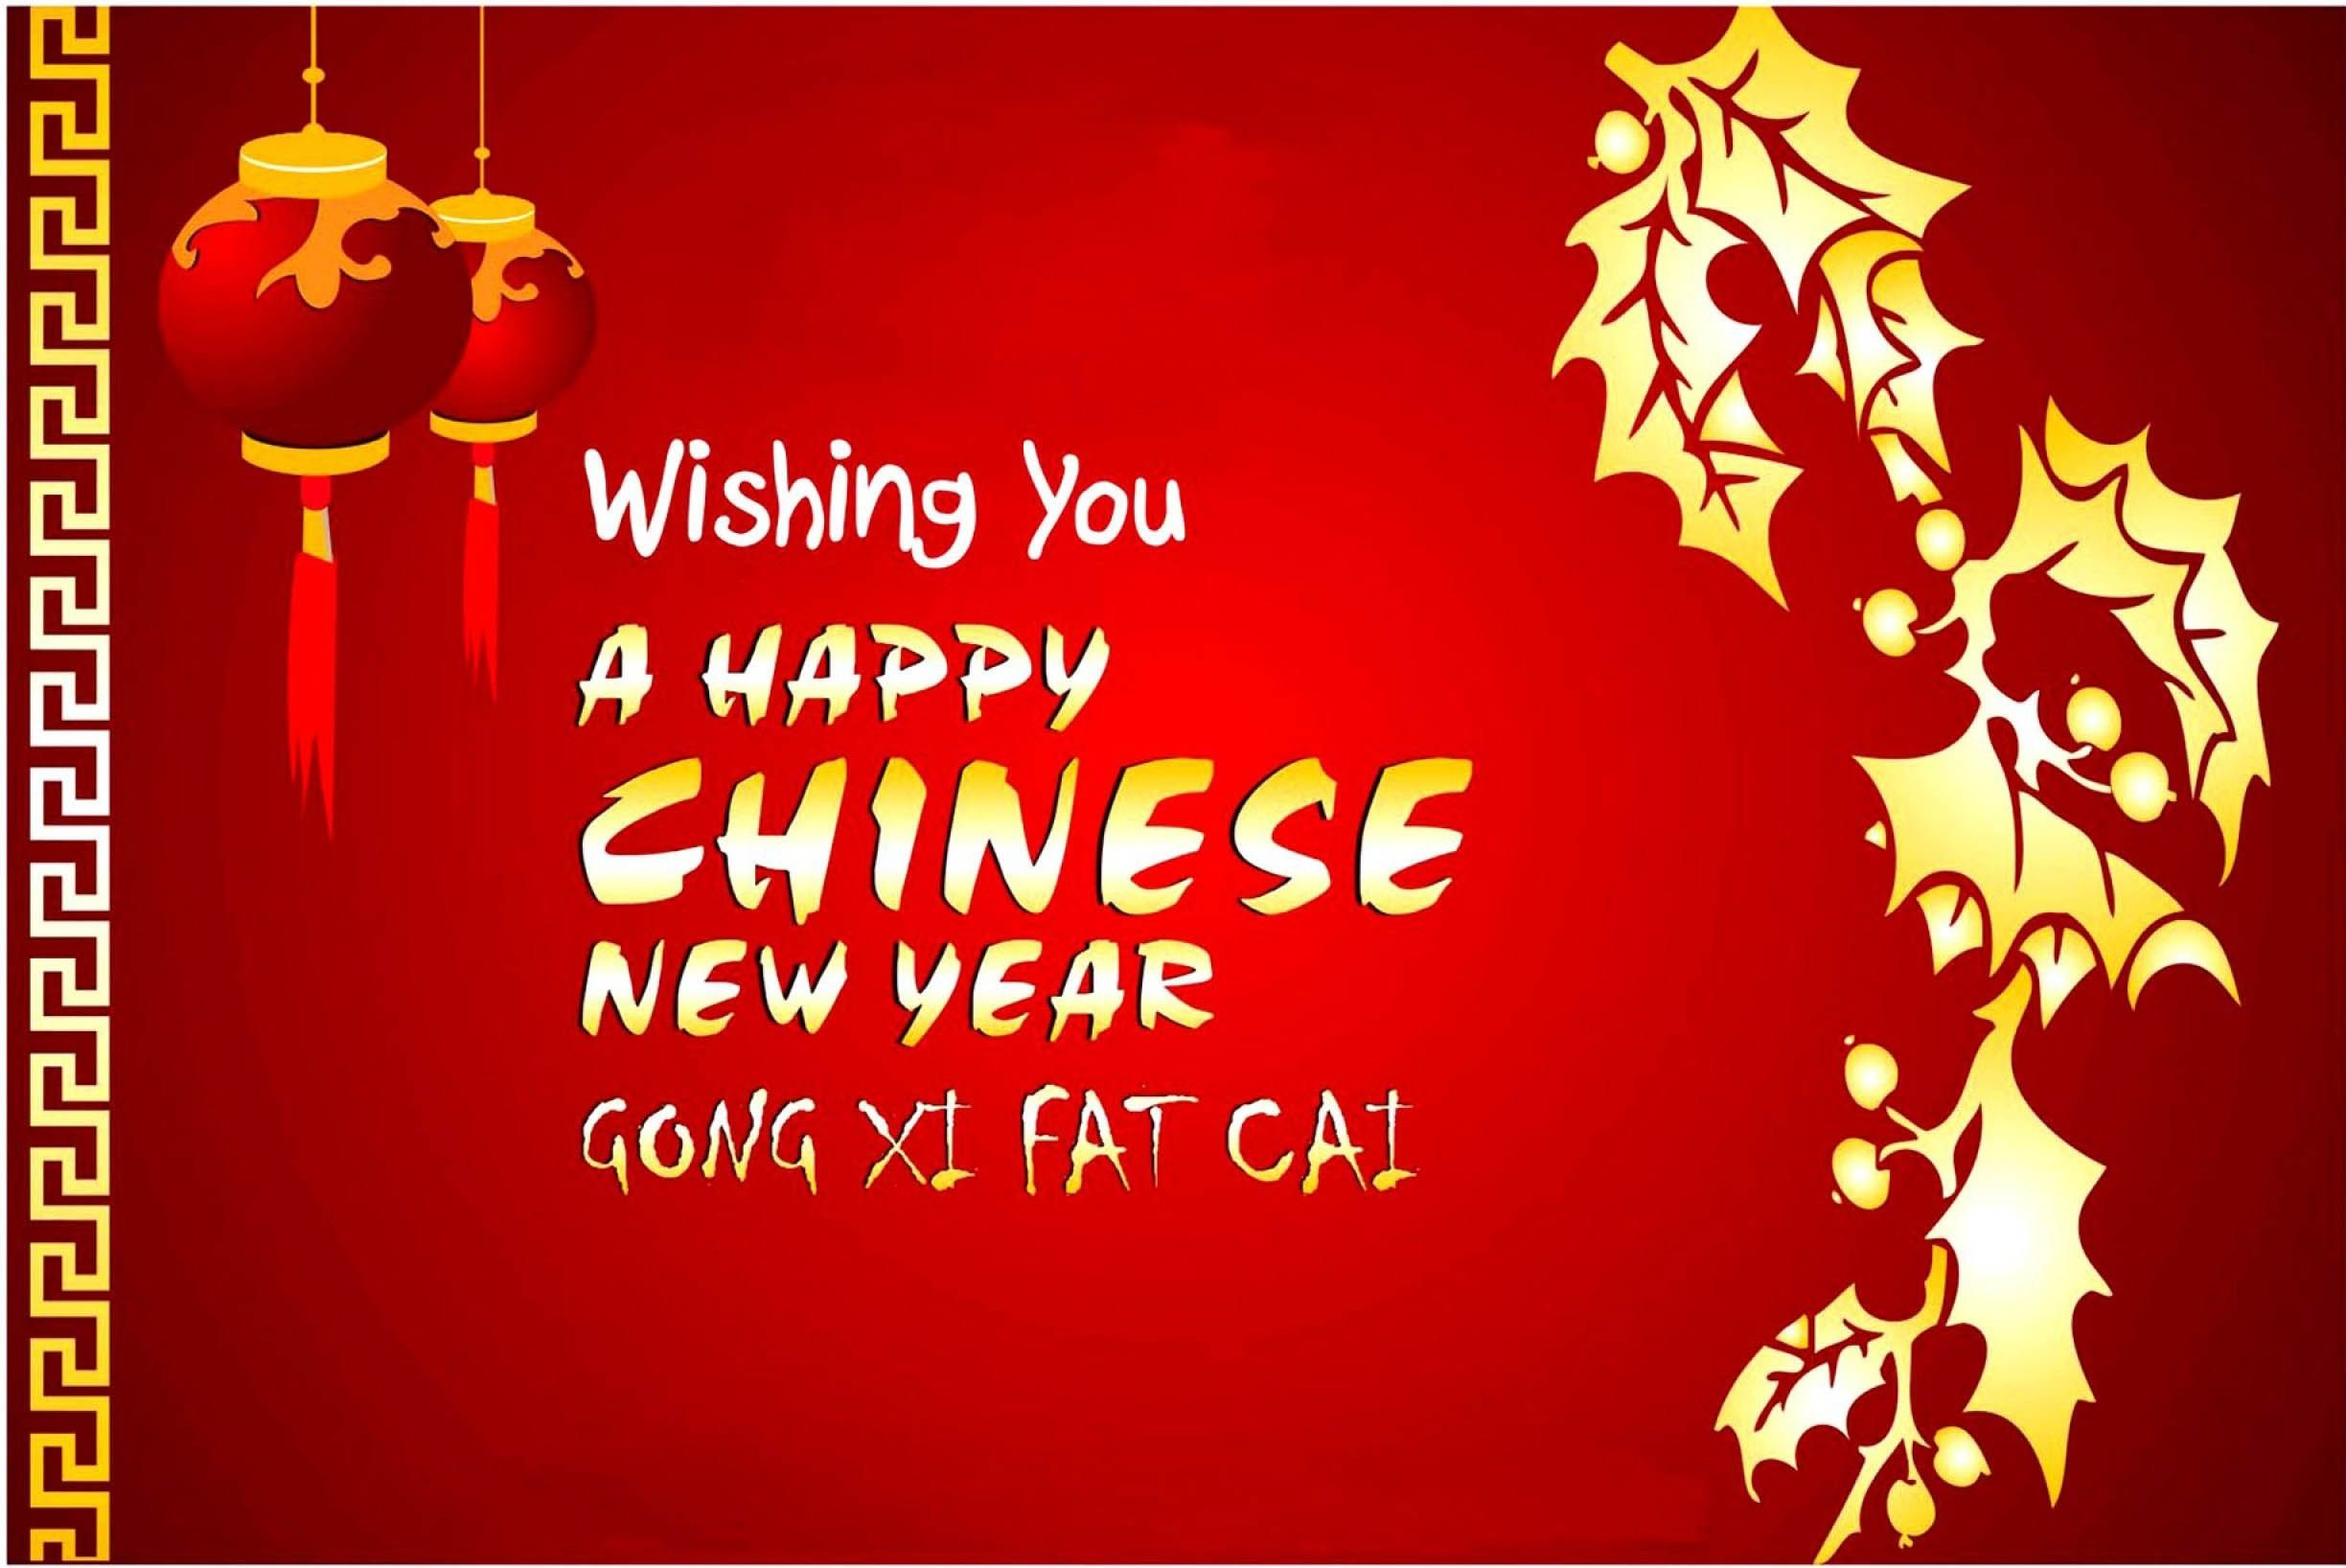 2448x1636 Happy Chinese New Year Lunar New Year Greetings, Happy Lunar New Year,  Happy New